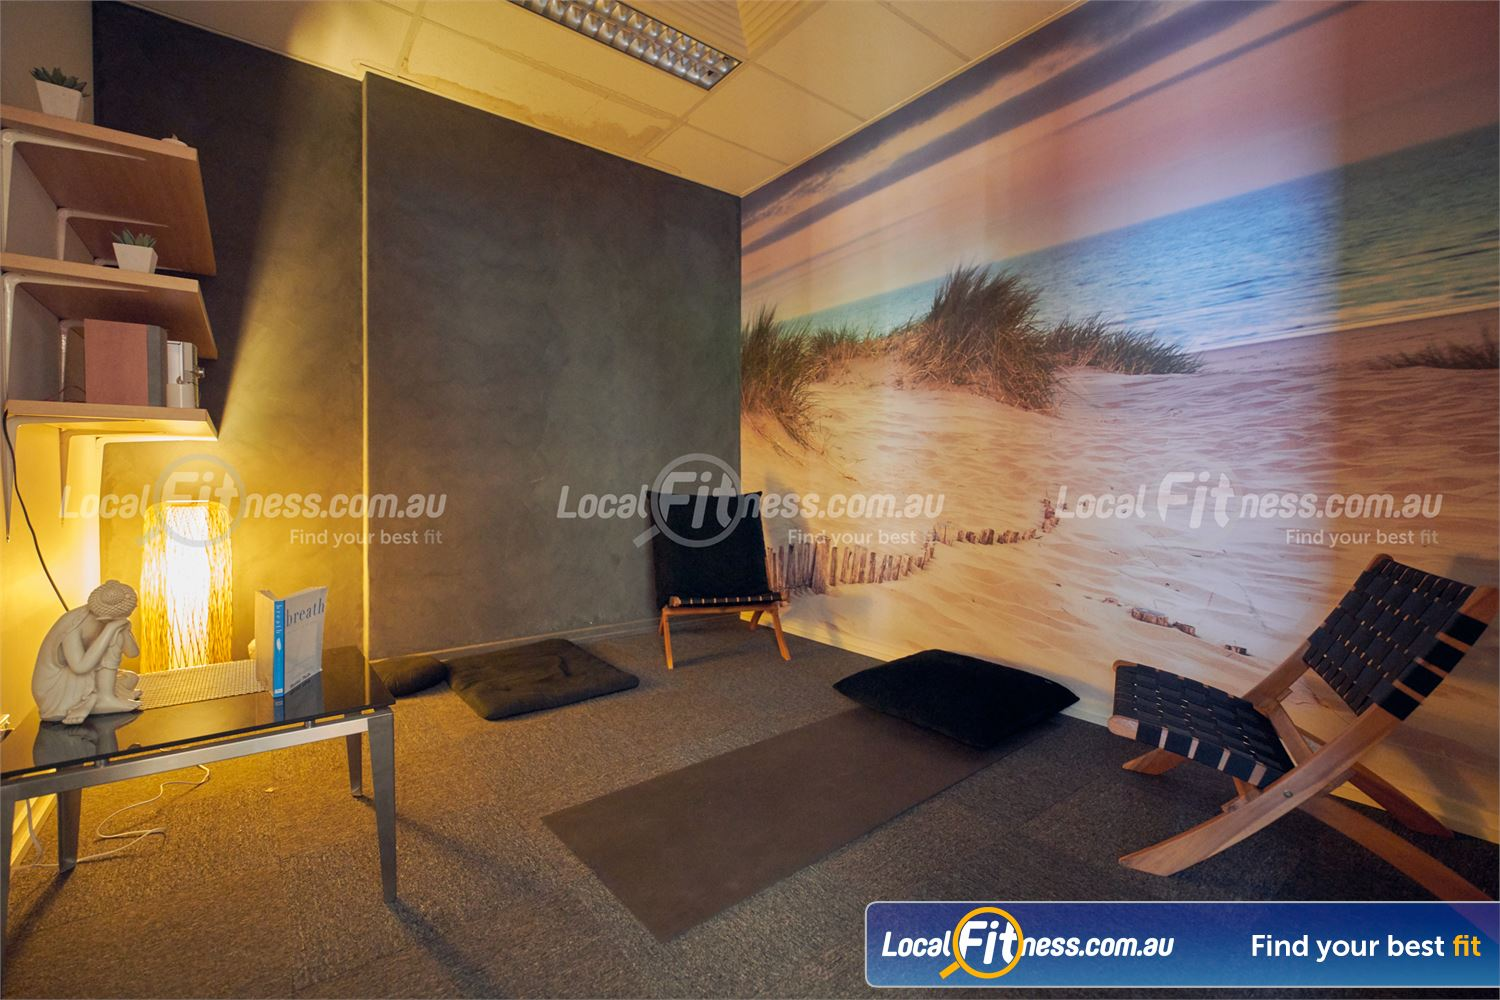 Fernwood Fitness Near Elwood Our tranquil meditation room will help you recenter your day.